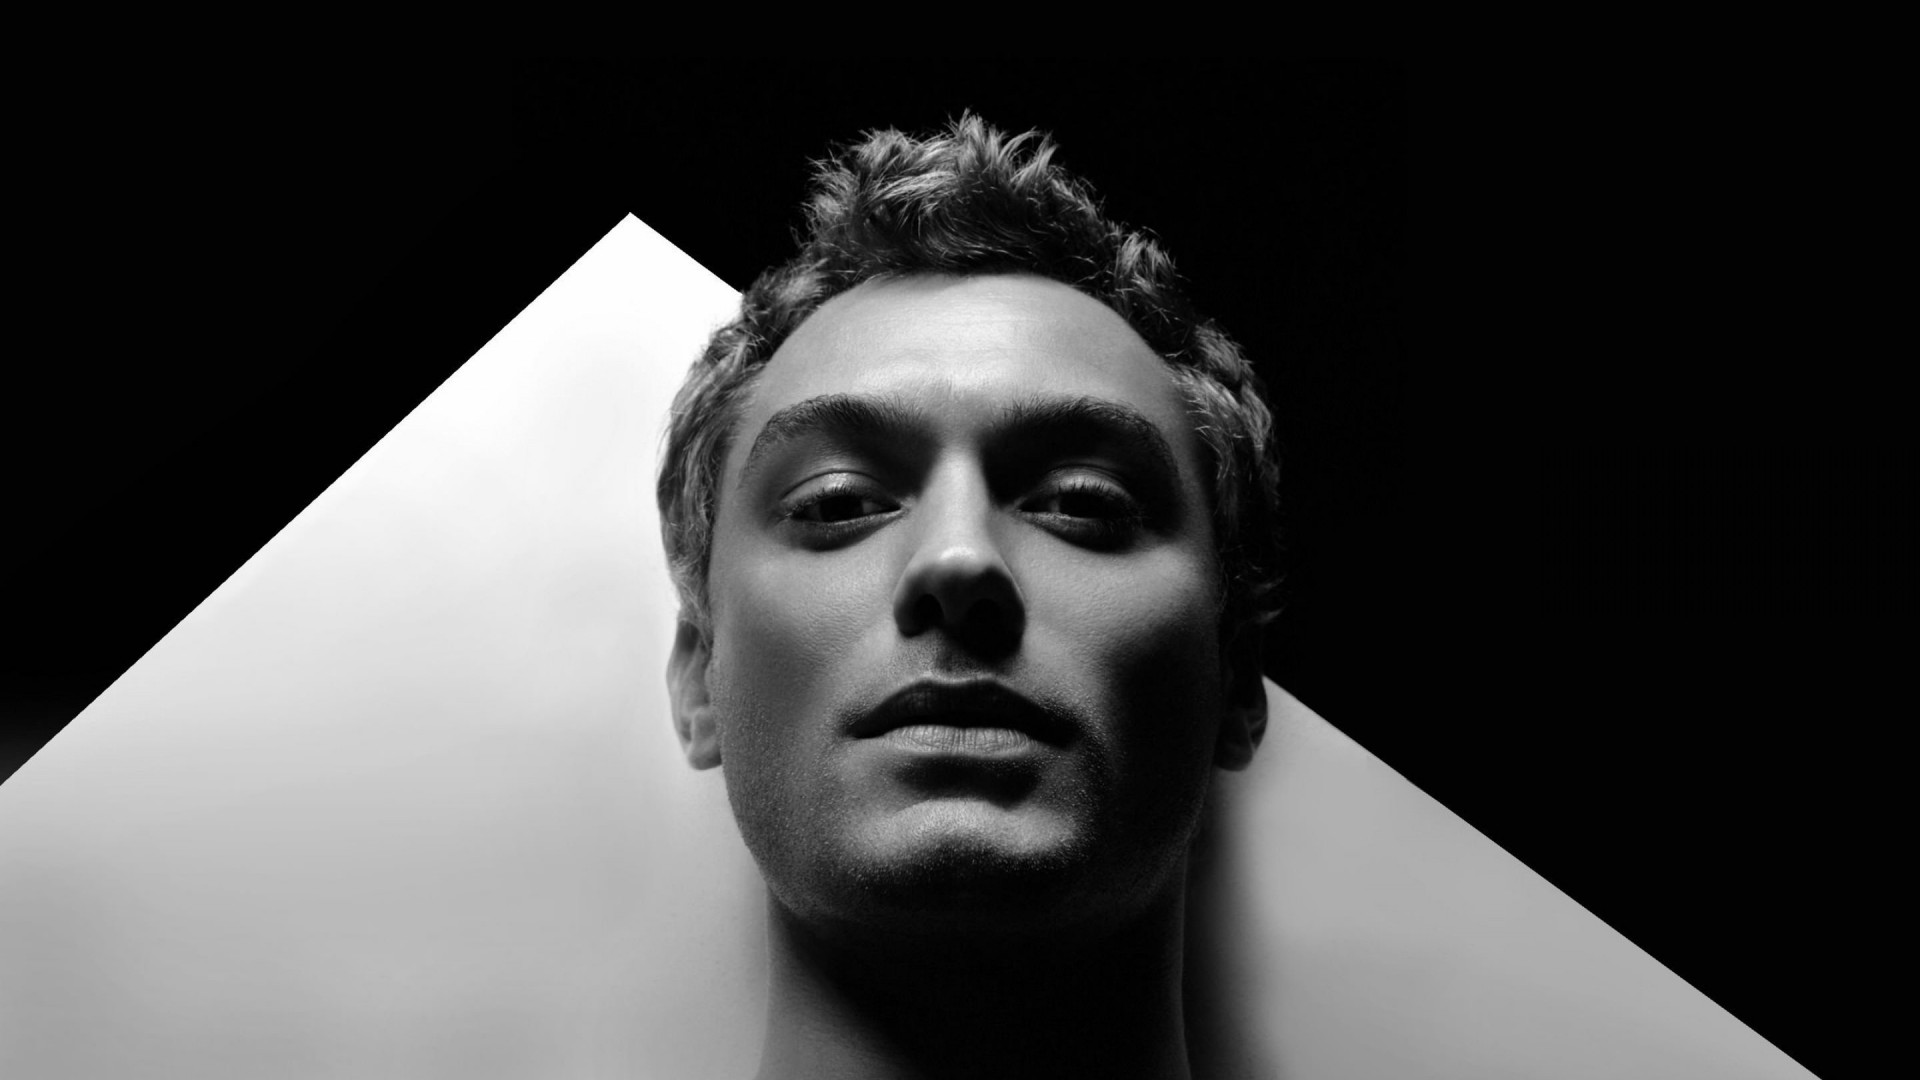 Jude Law Black & White Portrait Wallpaper for Desktop 1920x1080